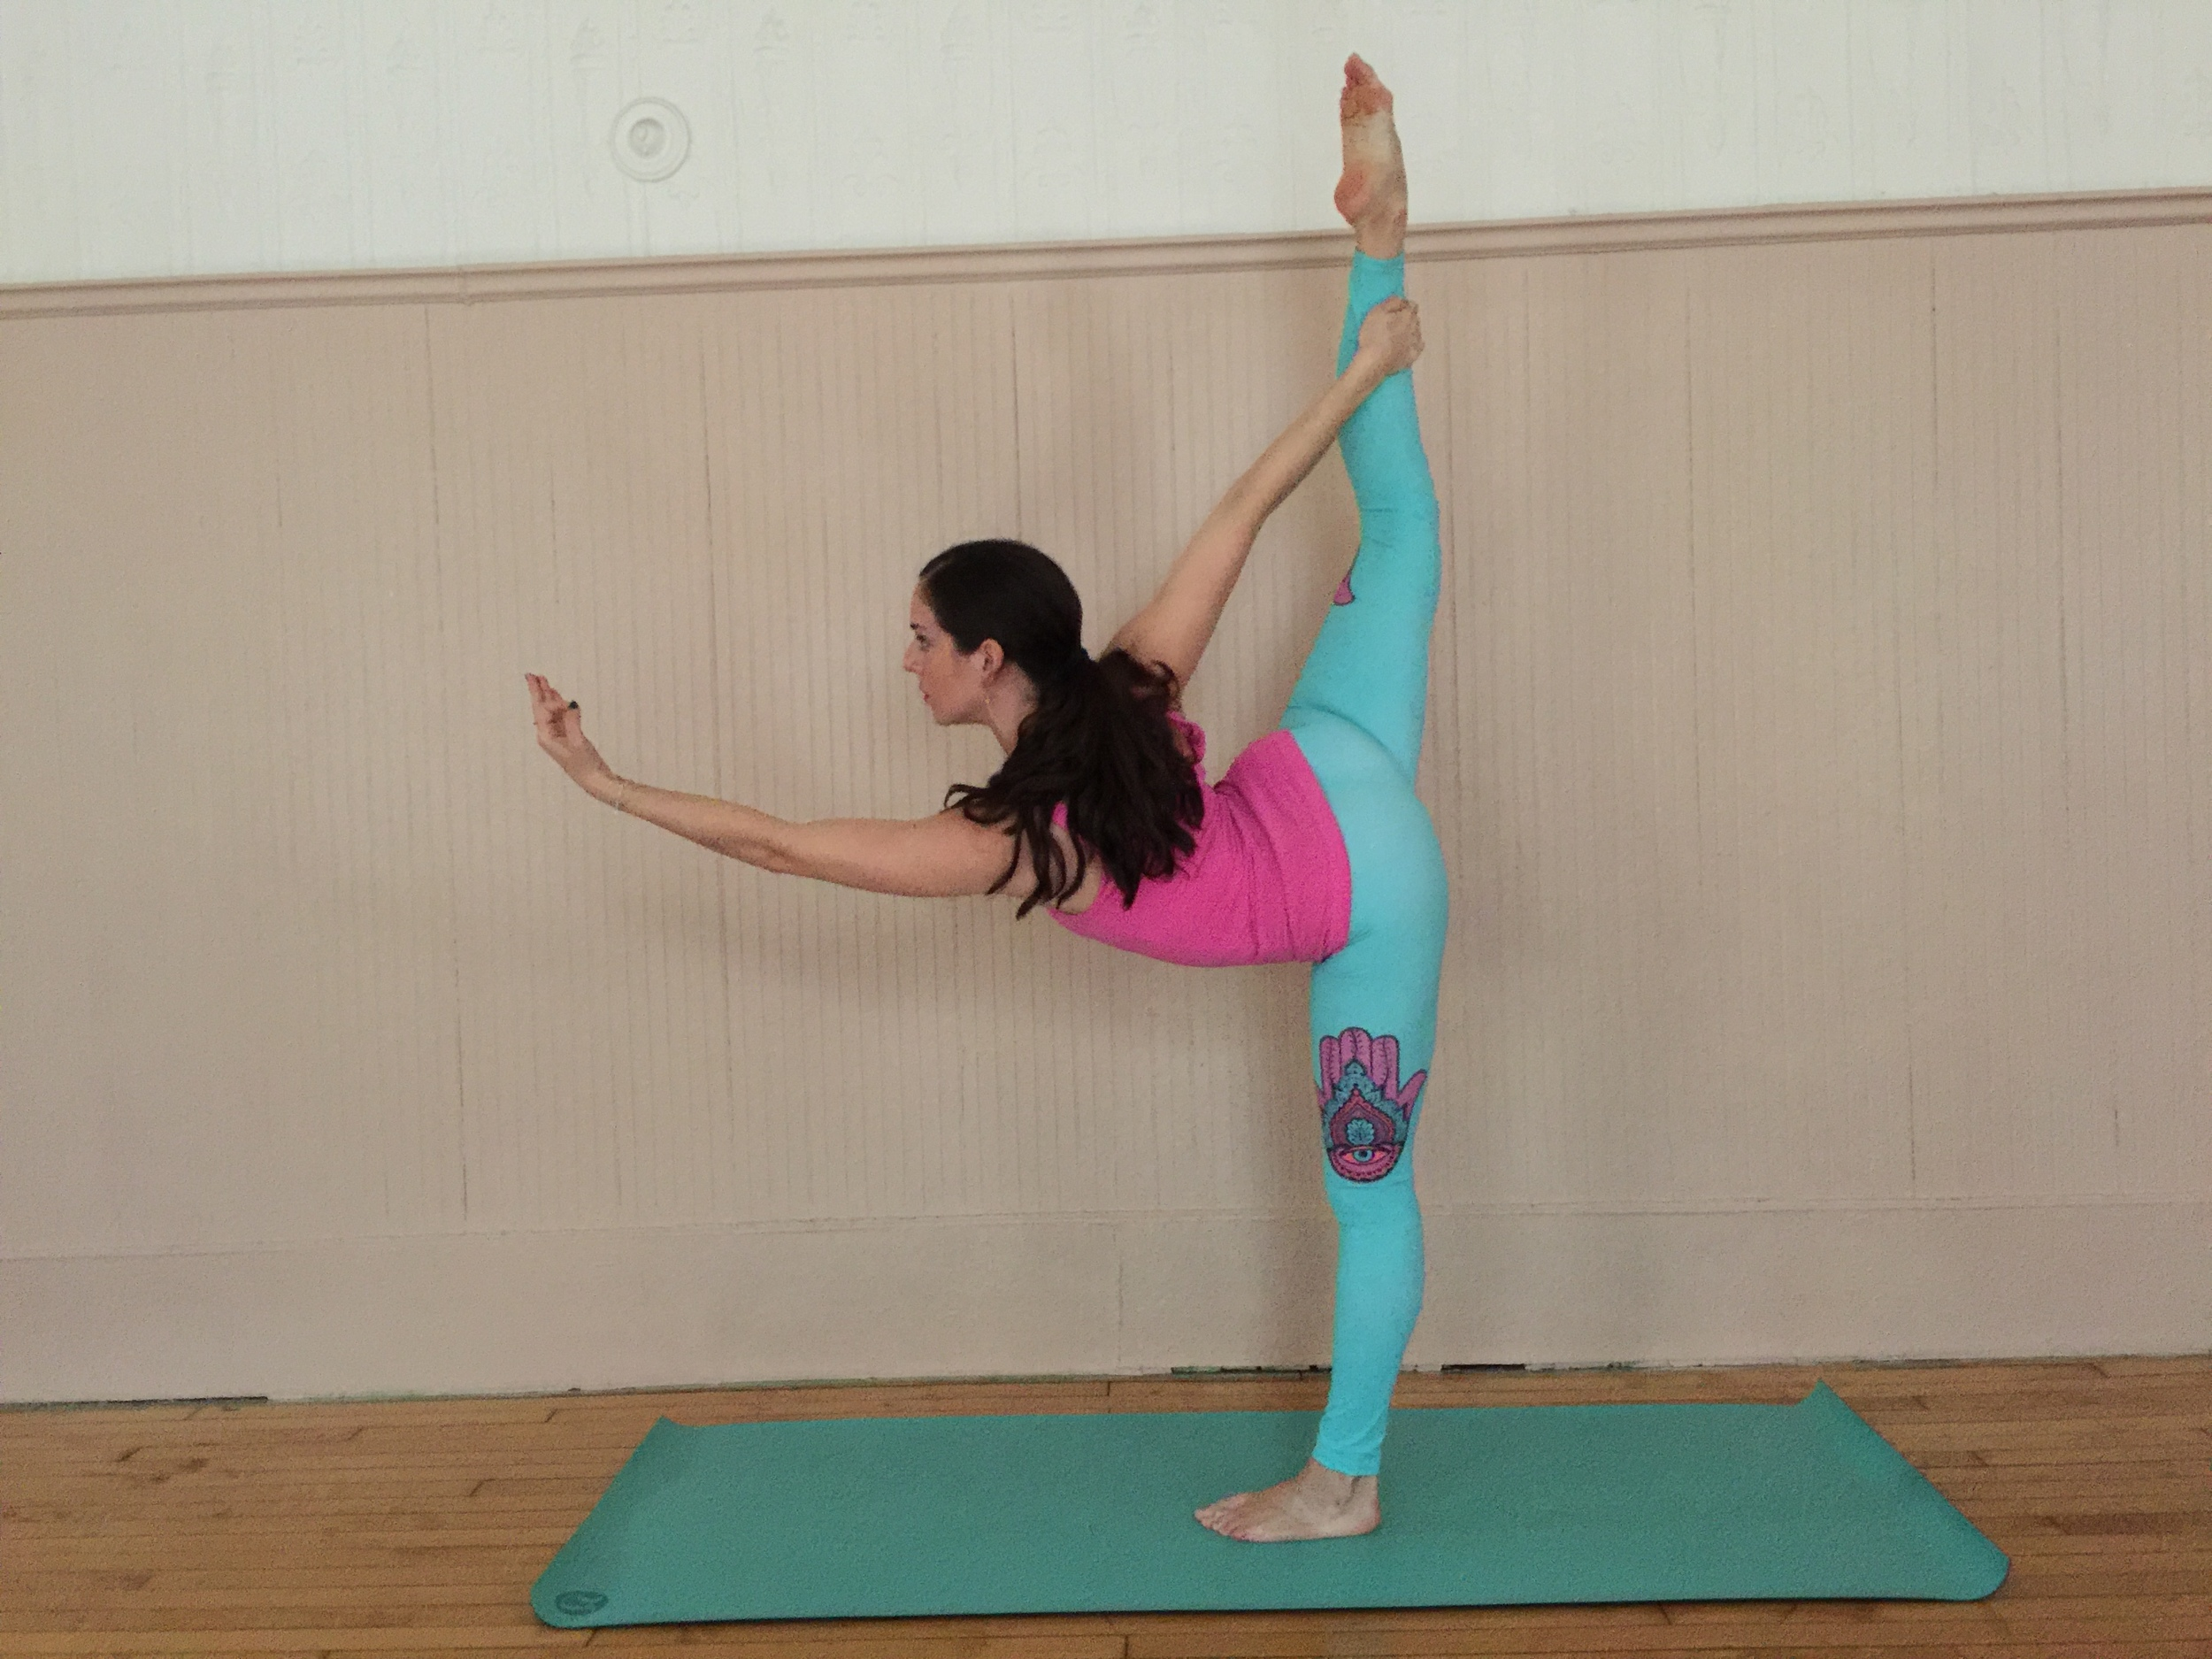 Wearing my new  Altar Ego Apparel  Hamsa legging in yoga class. Photographed by  Francisco Graciano .